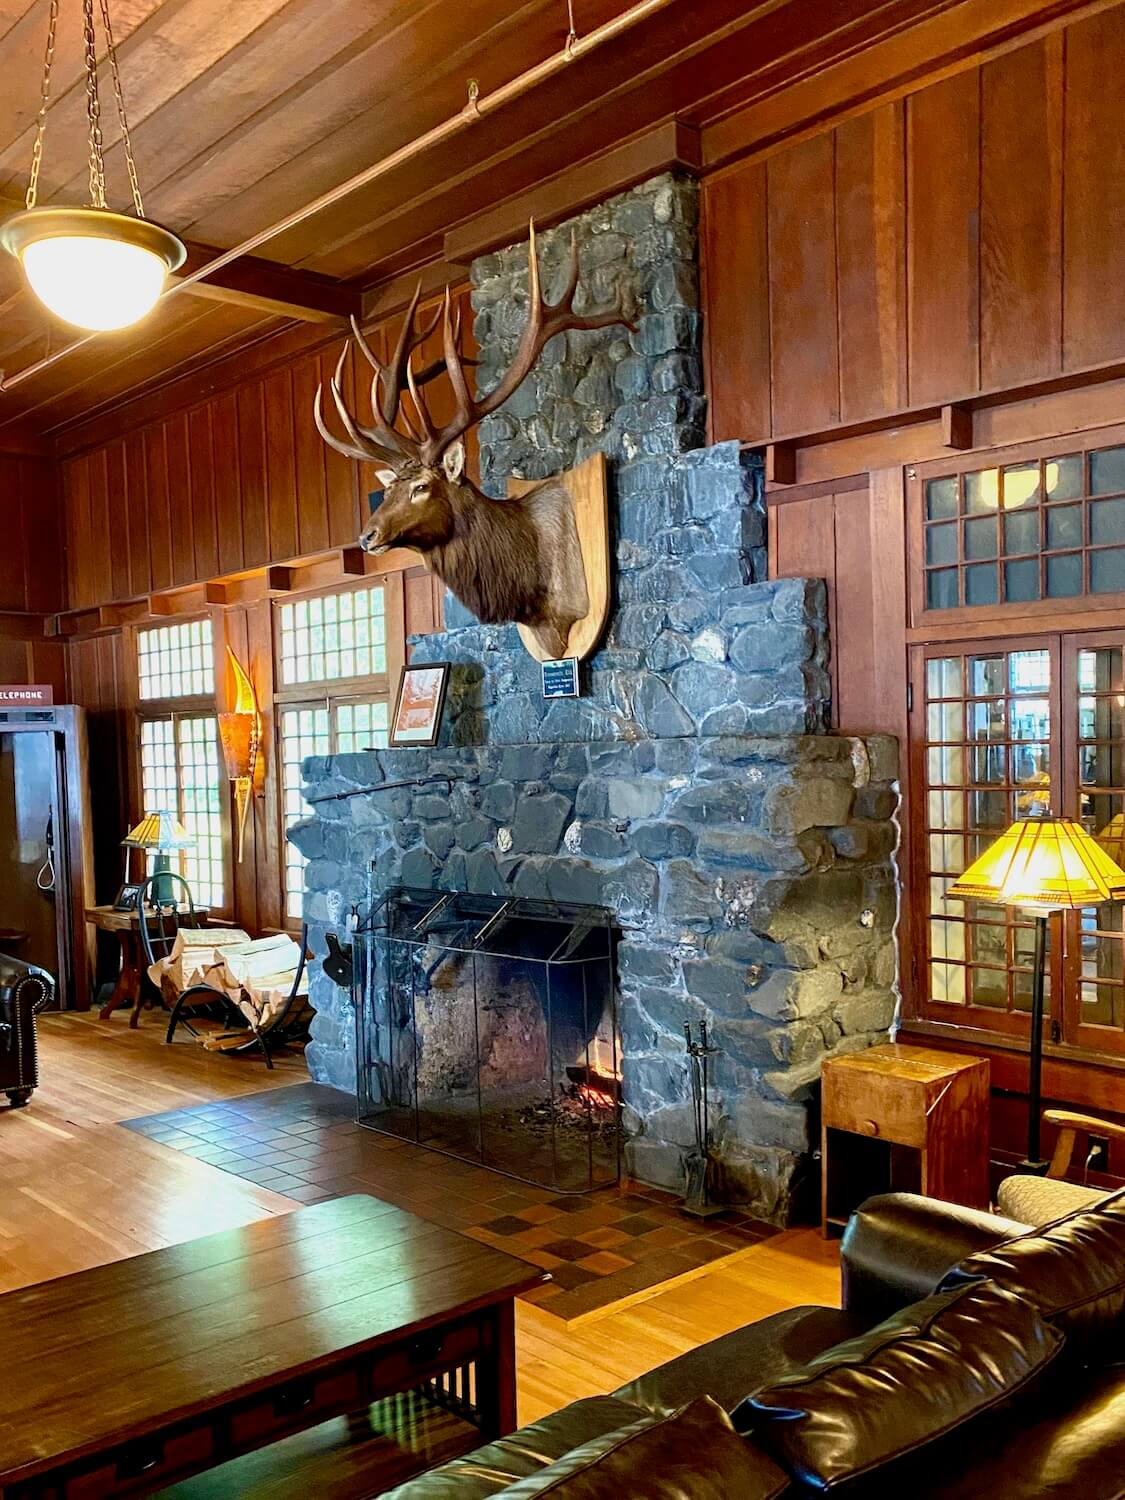 The rich interior of Lake Crescent Lodge offers a throwback to early Olympic National Park days. The head of a large Roosevelt Elk, complete with a large rack of horns, is mounted on the gray stone fireplace mantle. A lush brown leather couch frames in the lobby area with a yellow stained glass lamp and hundreds of tiny square pane windows creating three distinct doorways out to the forest.